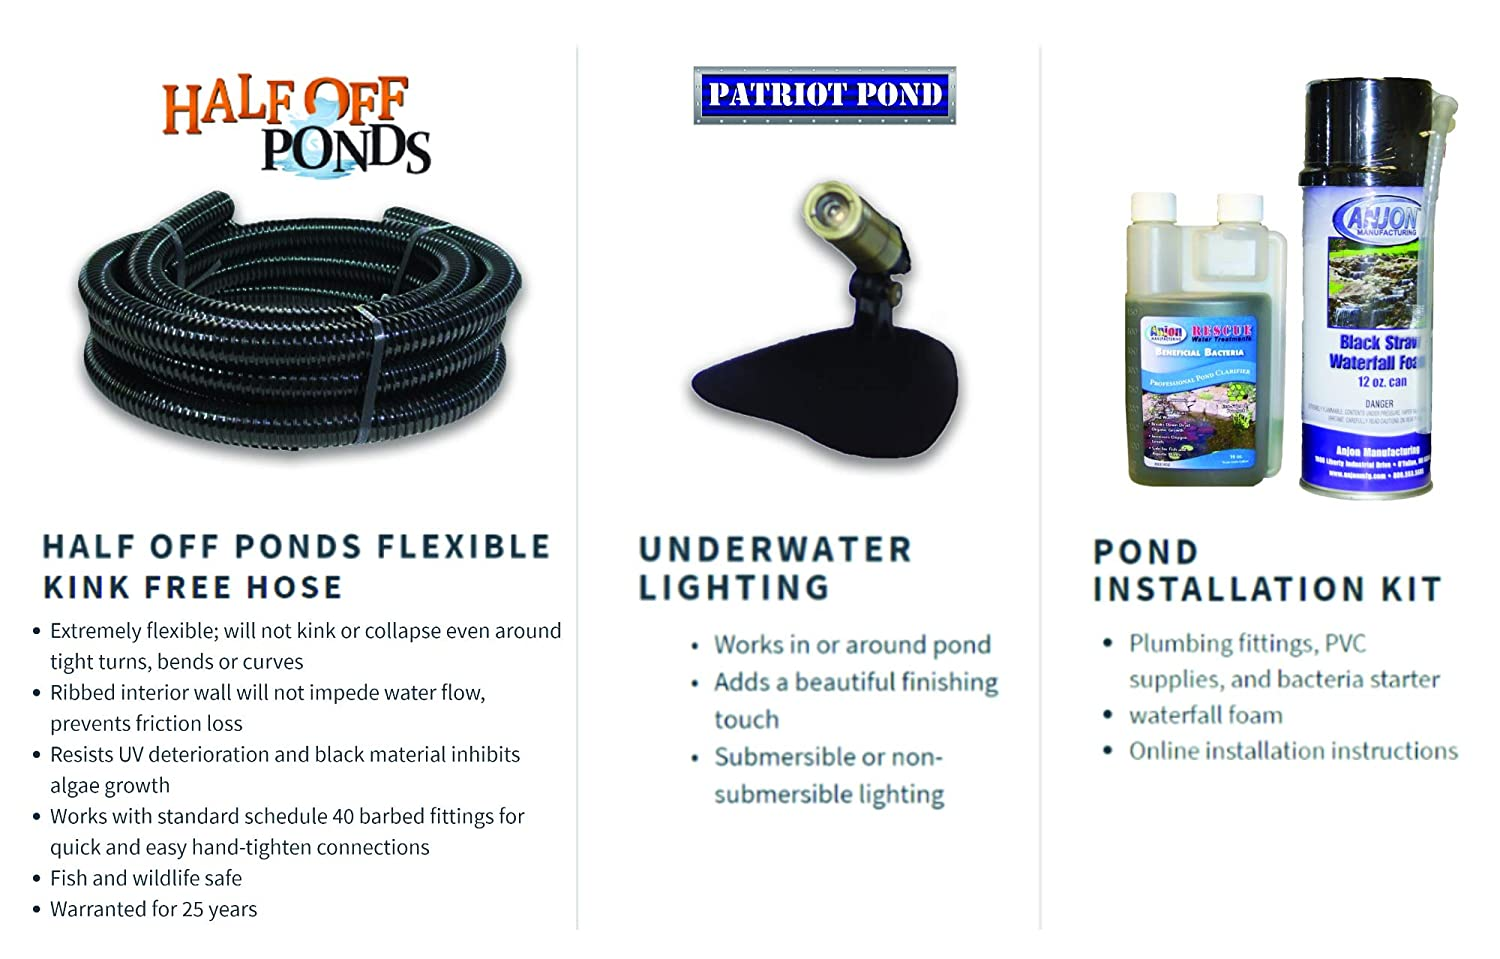 Amazon.com : Half Off Ponds PVCMDH4 - Medium Hybrid PVC Pond Kit w/ 15 x 25 PolyGuard Pond Liner, 3, 300 GPH Pump, 16